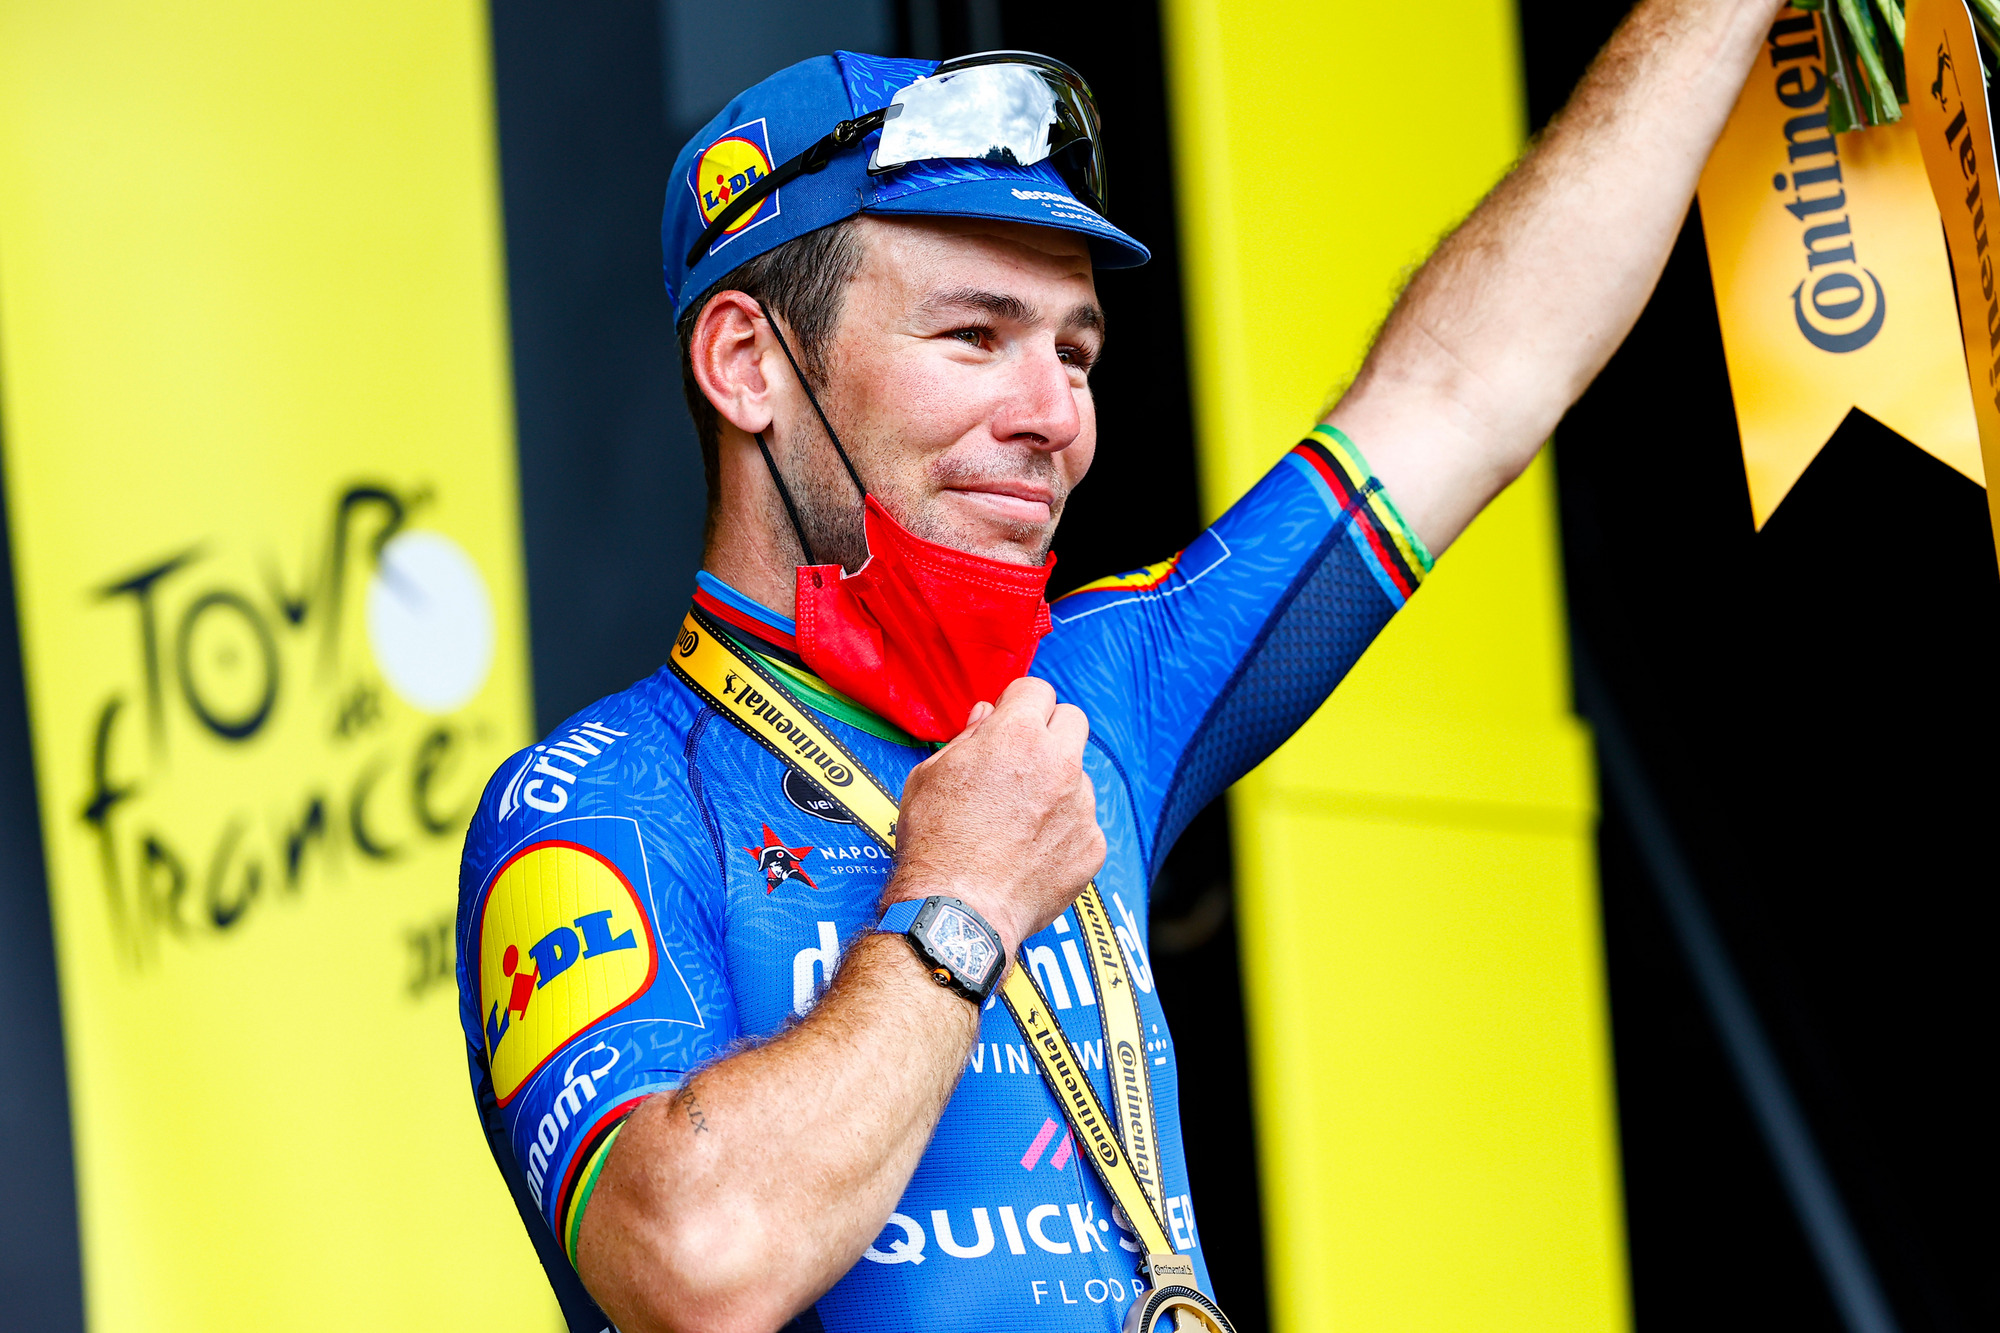 Tour de France 2021 108th Edition 4th stage Redon Fougeres 1504 km 29062021 Mark Cavendish GBR Deceuninck QuickStep photo Luca BettiniBettiniPhoto2021